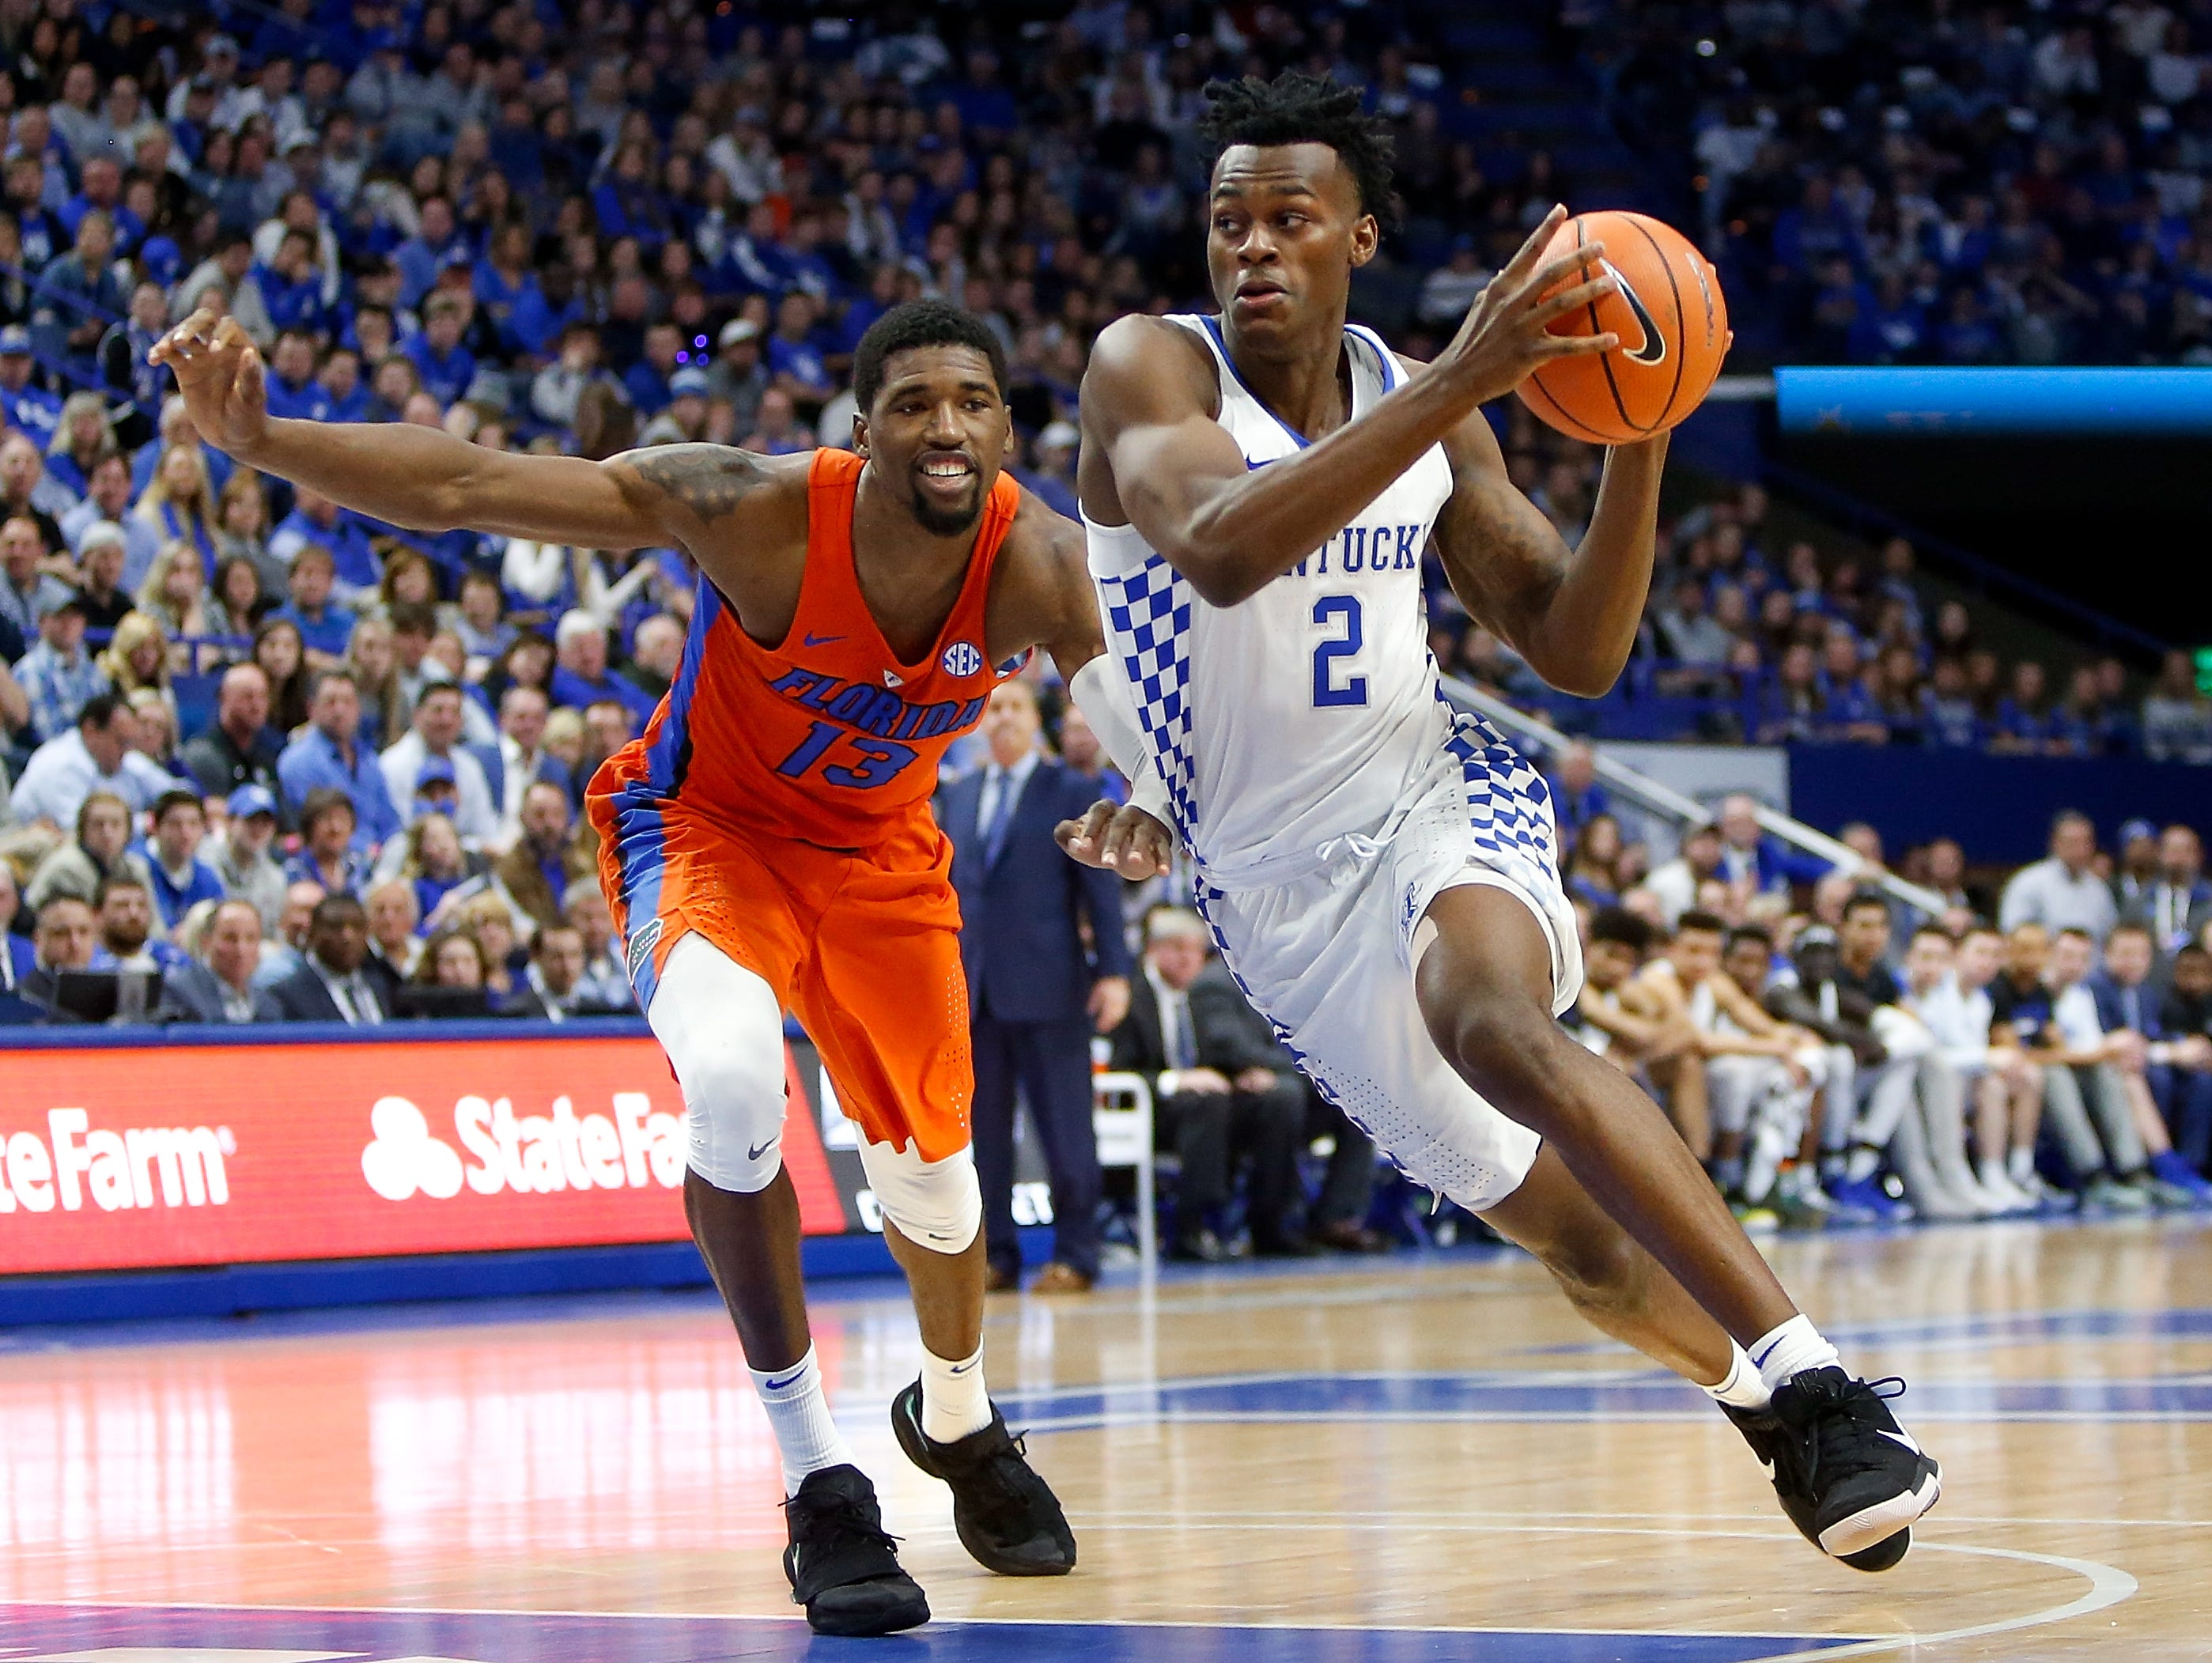 How To Watch Uk Basketball Play Etsu Game Time Tv: How To Watch Kentucky Basketball At Florida: Game Time, TV